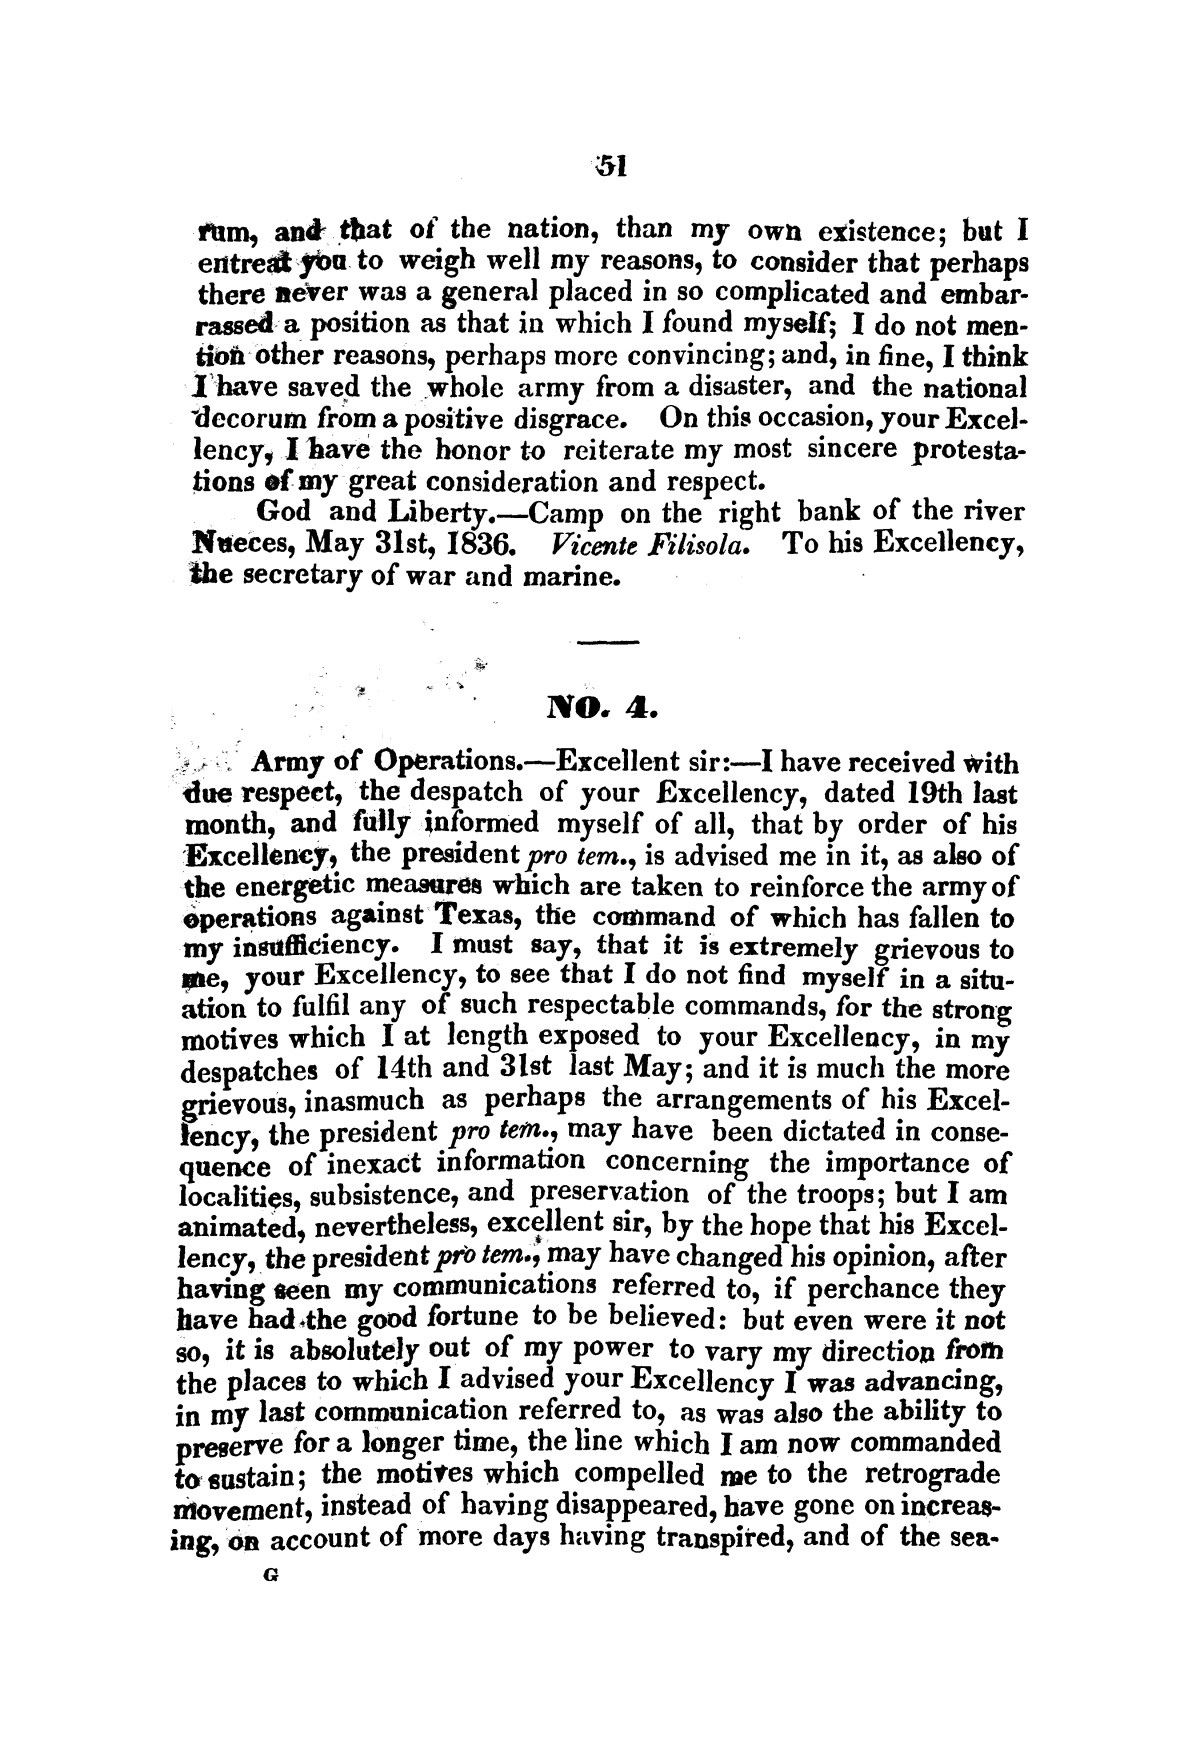 Evacuation of Texas : translation of the Representation addressed to the supreme government / by Vicente Filisola, in defence of his honor, and explanation of his operations as commander-in-chief of the army against Texas.                                                                                                      [Sequence #]: 54 of 72